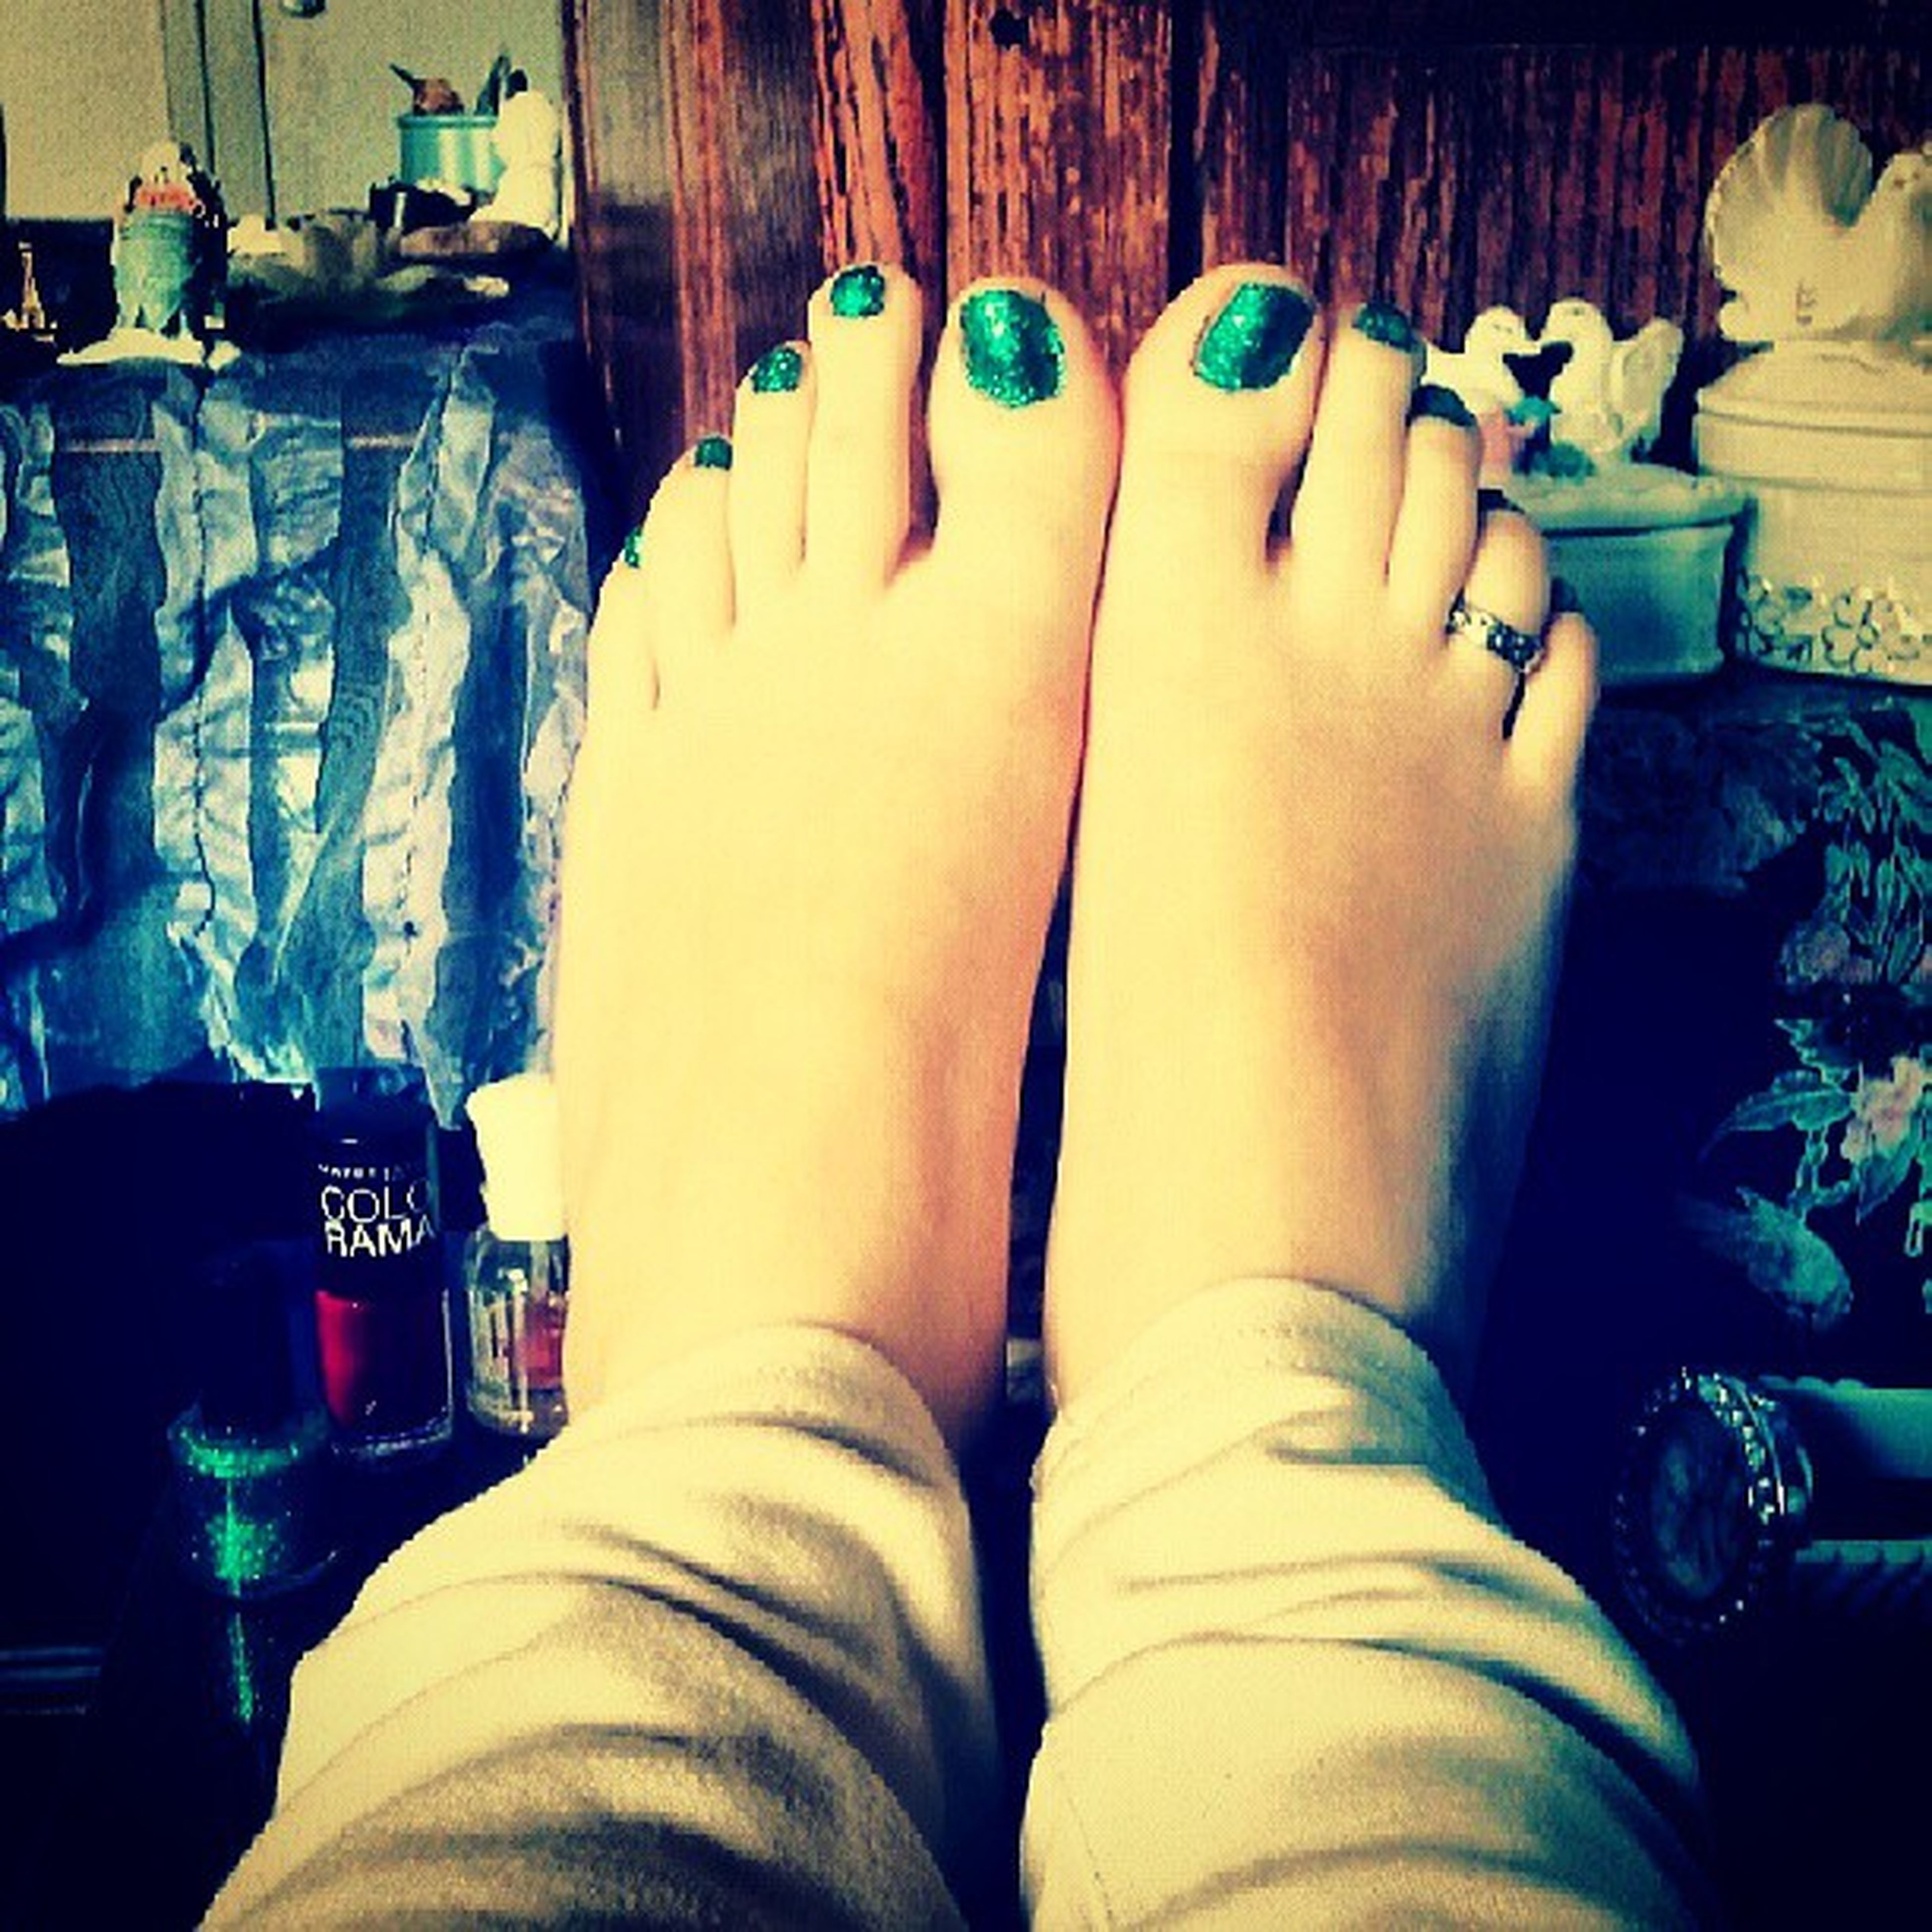 indoors, person, low section, lifestyles, personal perspective, human foot, relaxation, home interior, leisure activity, sitting, bed, men, legs crossed at ankle, part of, barefoot, bedroom